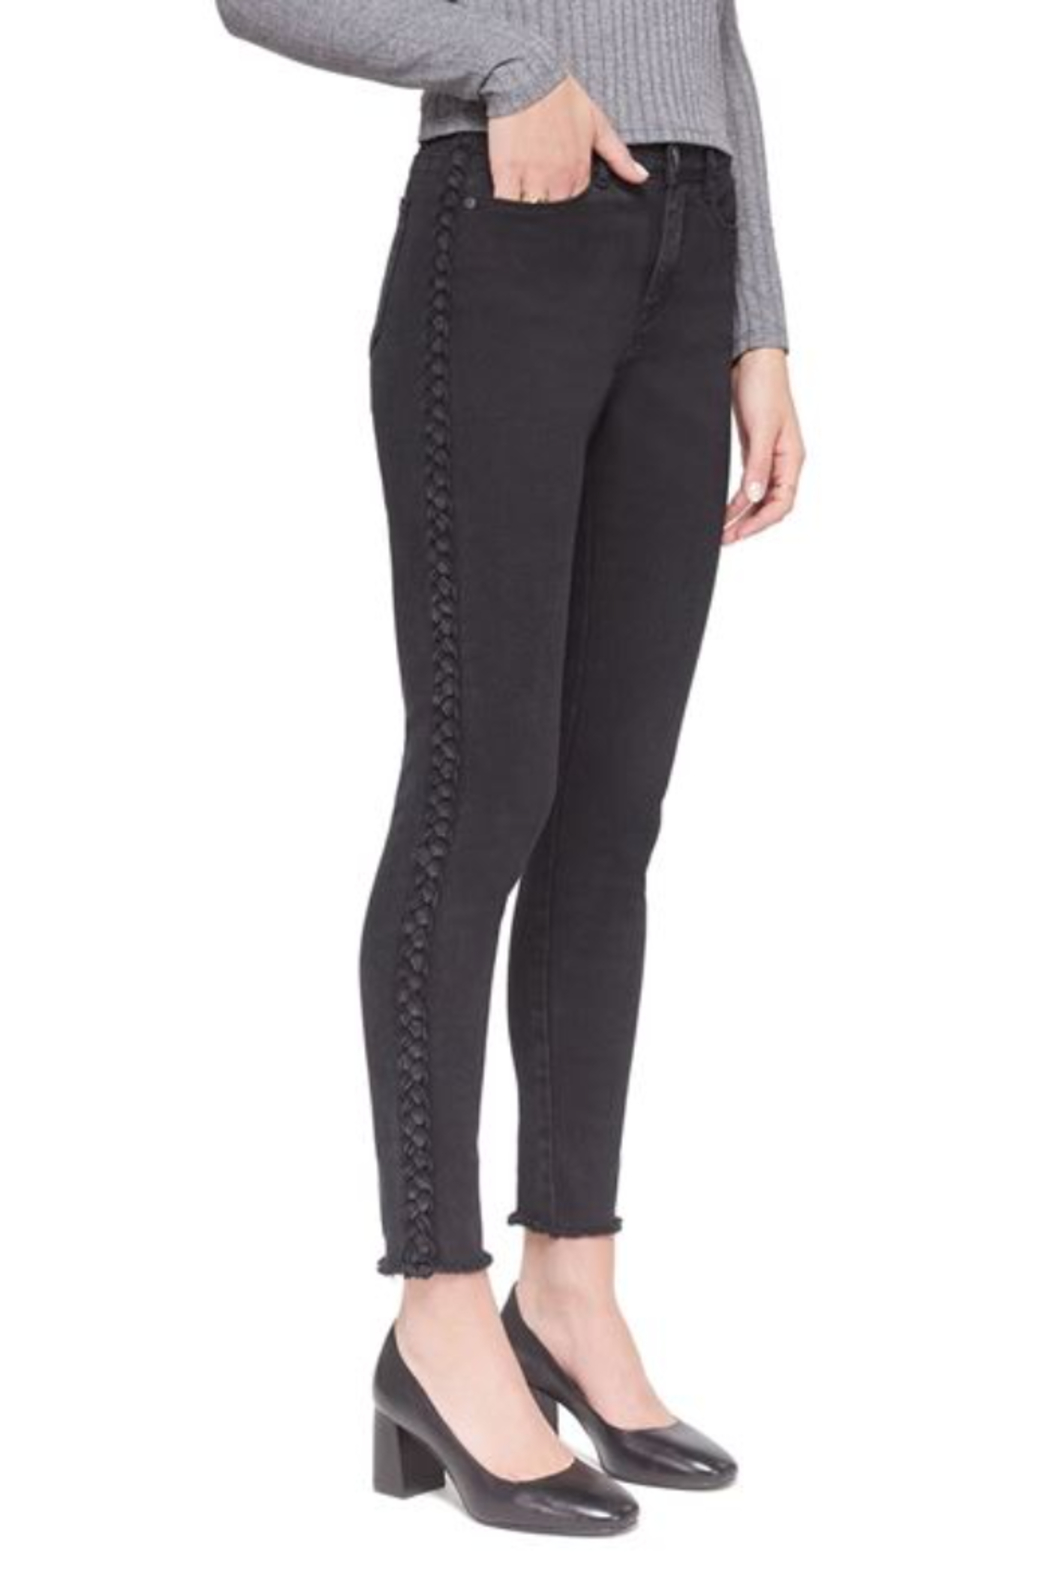 Lola Jeans HIgh Rise Braided Black Skinny  Jean - Main Image